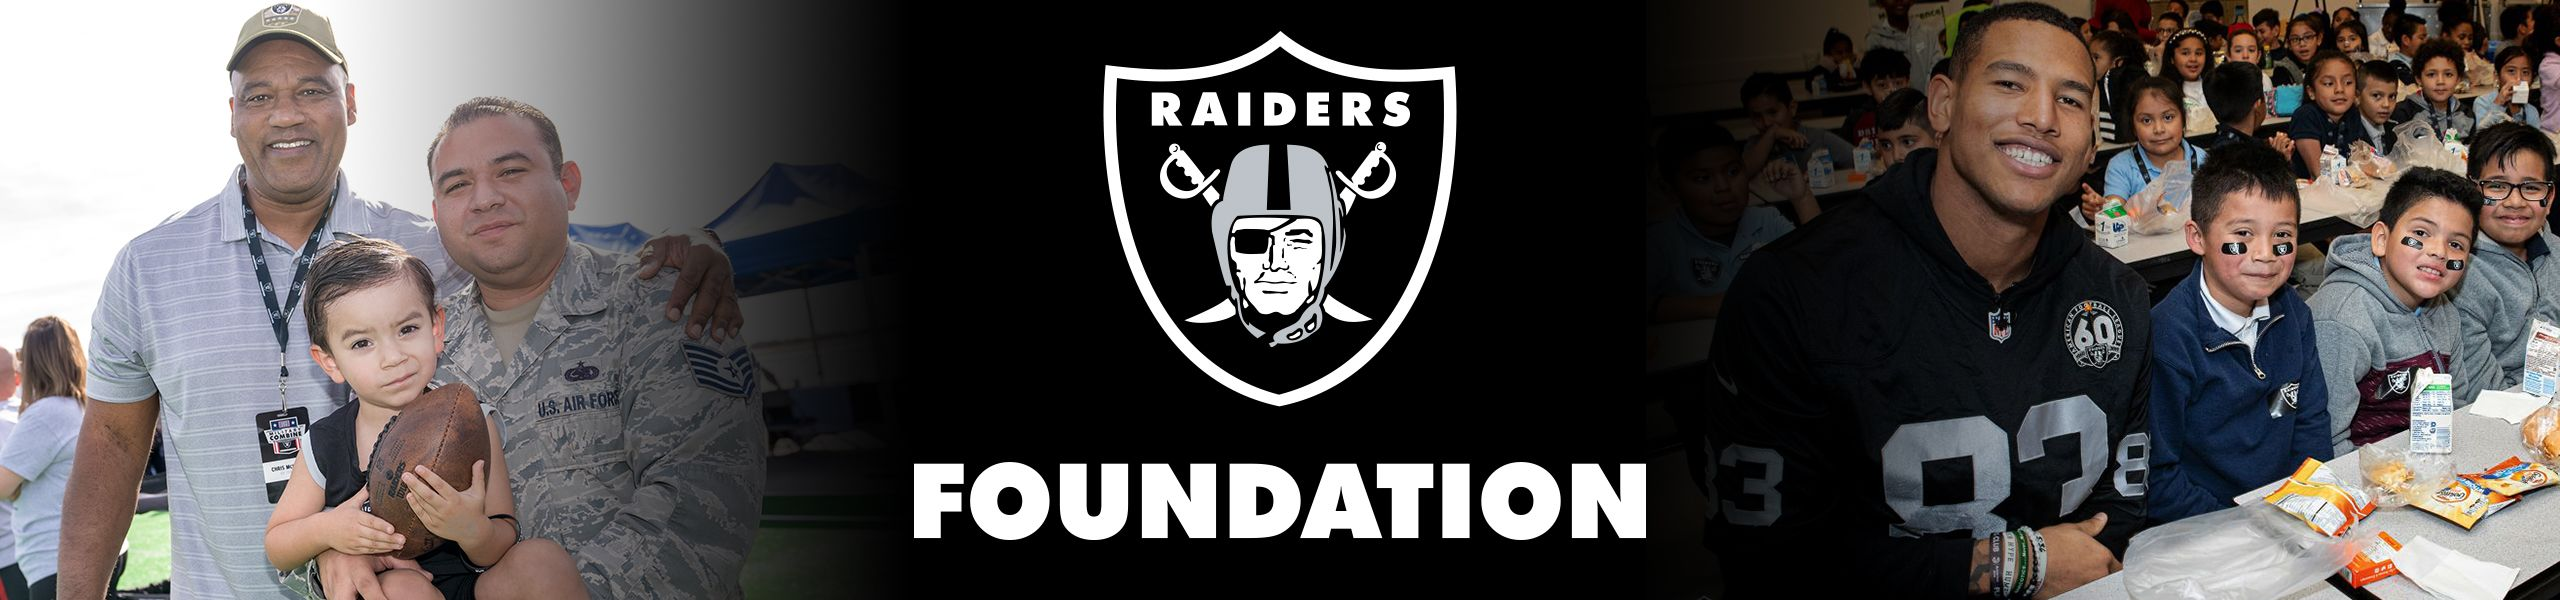 RaidersFoundationHeader_2560x600